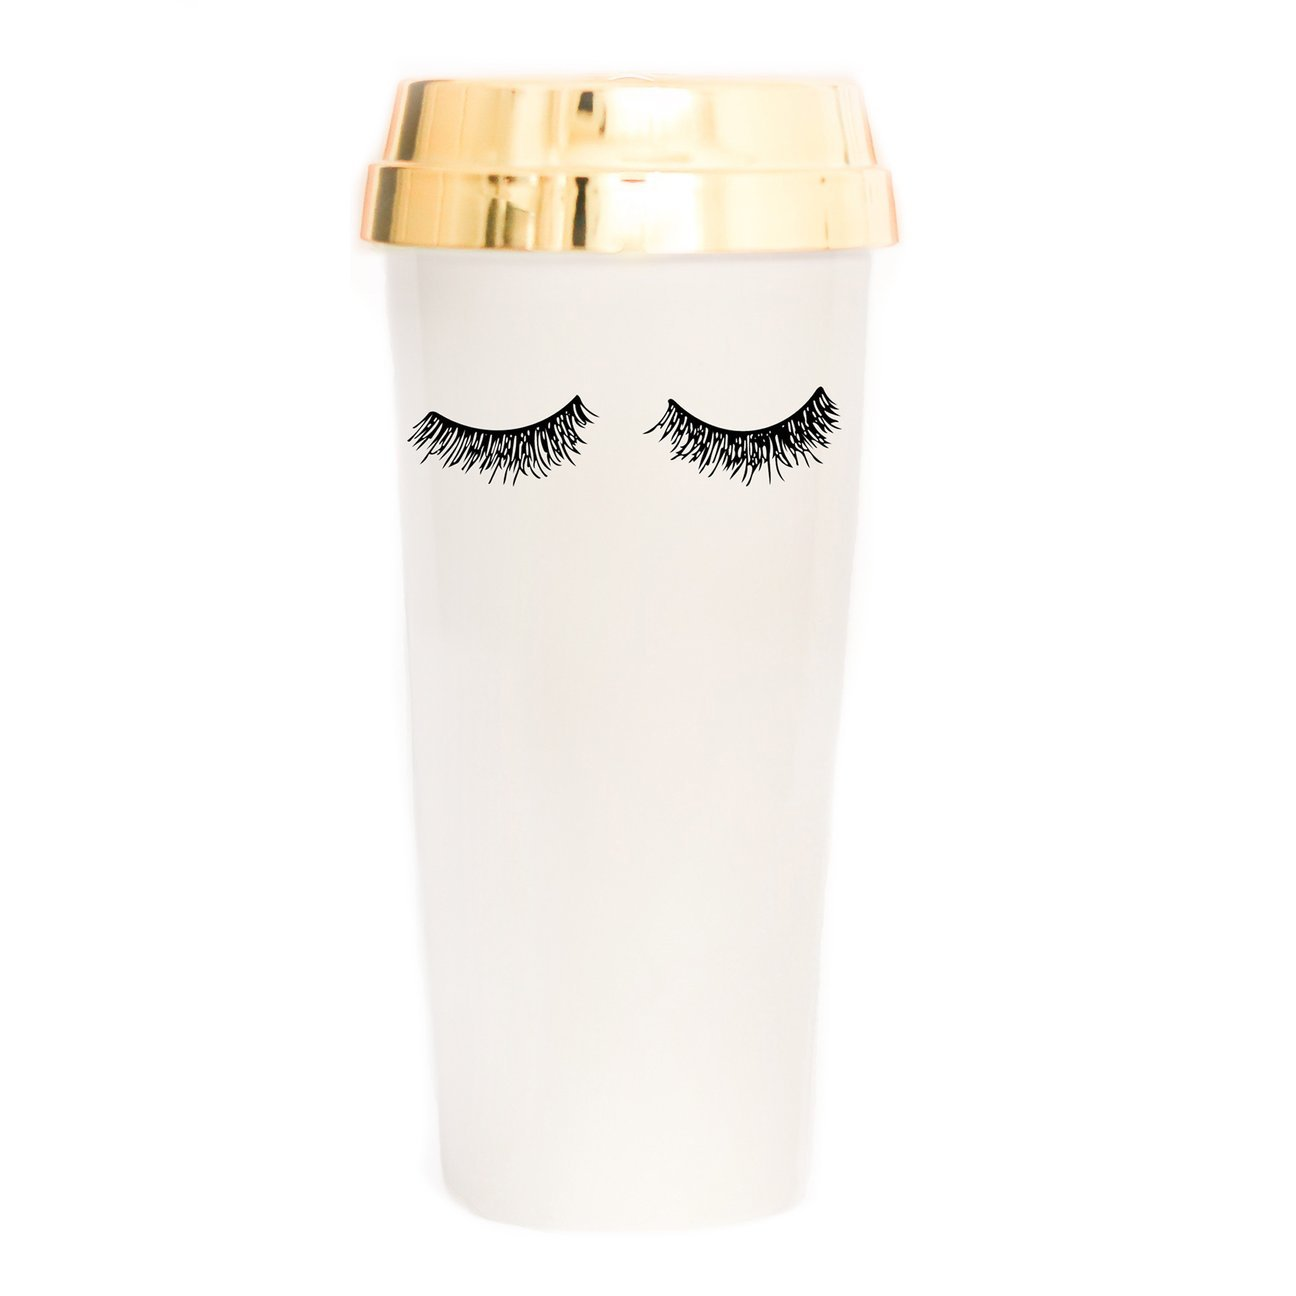 Eyelash Travel Mug Gold Lid Reusable Mugs Makeup Lashes Decor Cute Coffee Accessories for Women Commuter Plastic Tumbler Novelty Travel Mug Hand Drawn Insulated Coffee Cups With Lids Hot Tea Gifts